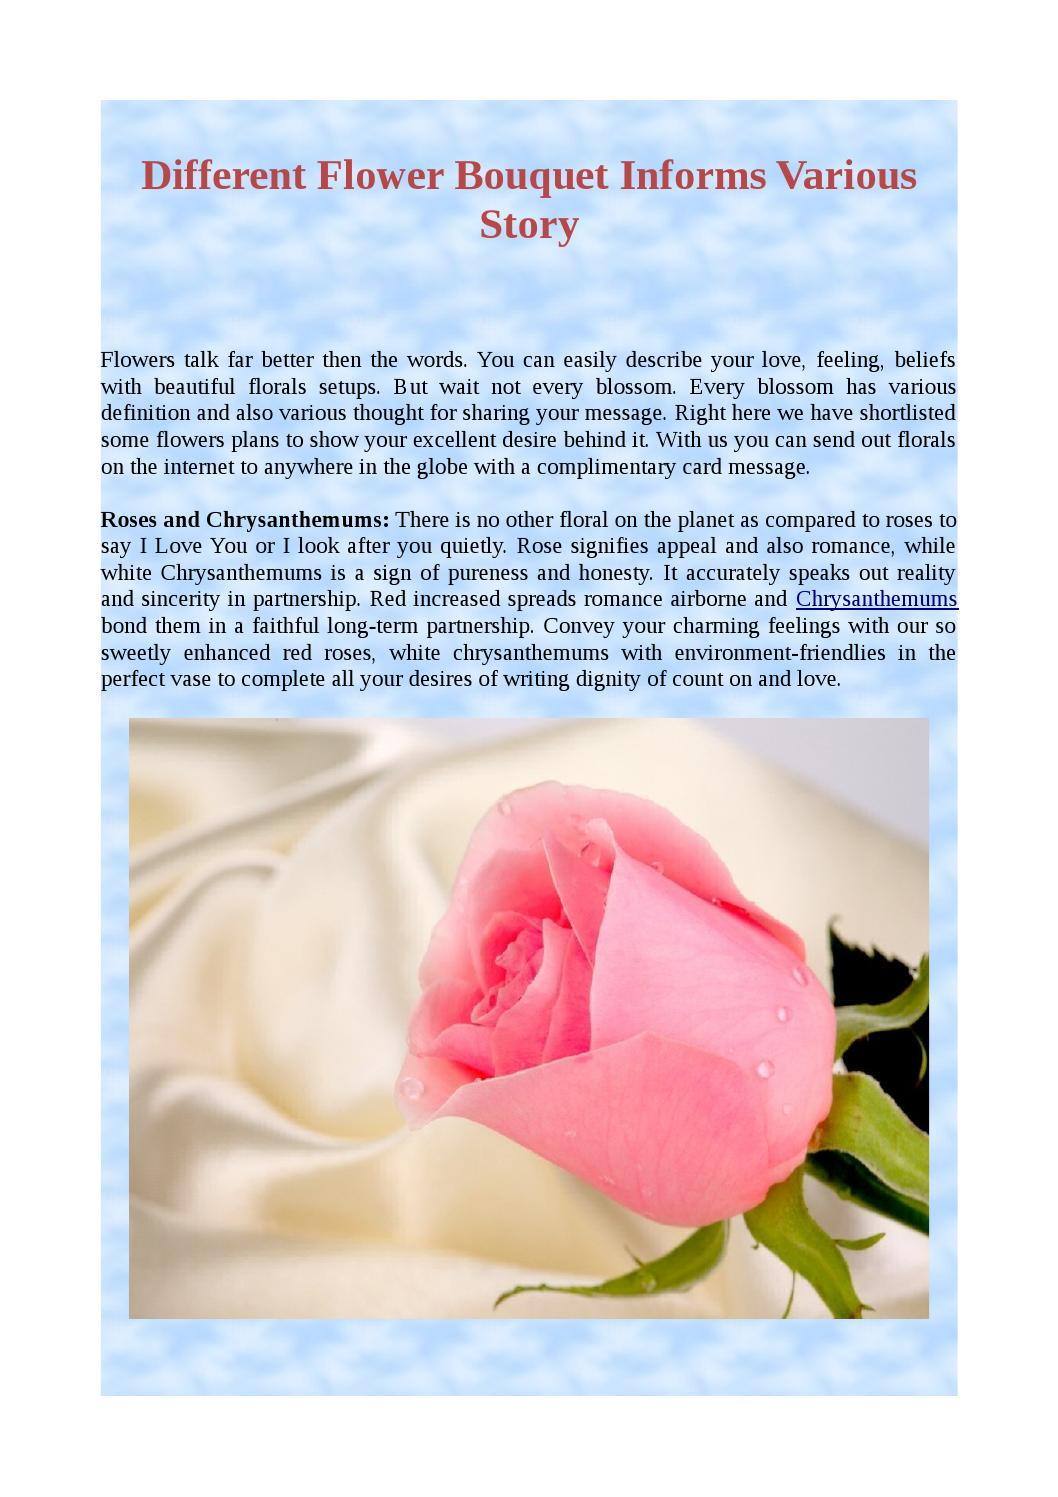 Different flower bouquet informs various story by jasmine rhyas issuu izmirmasajfo